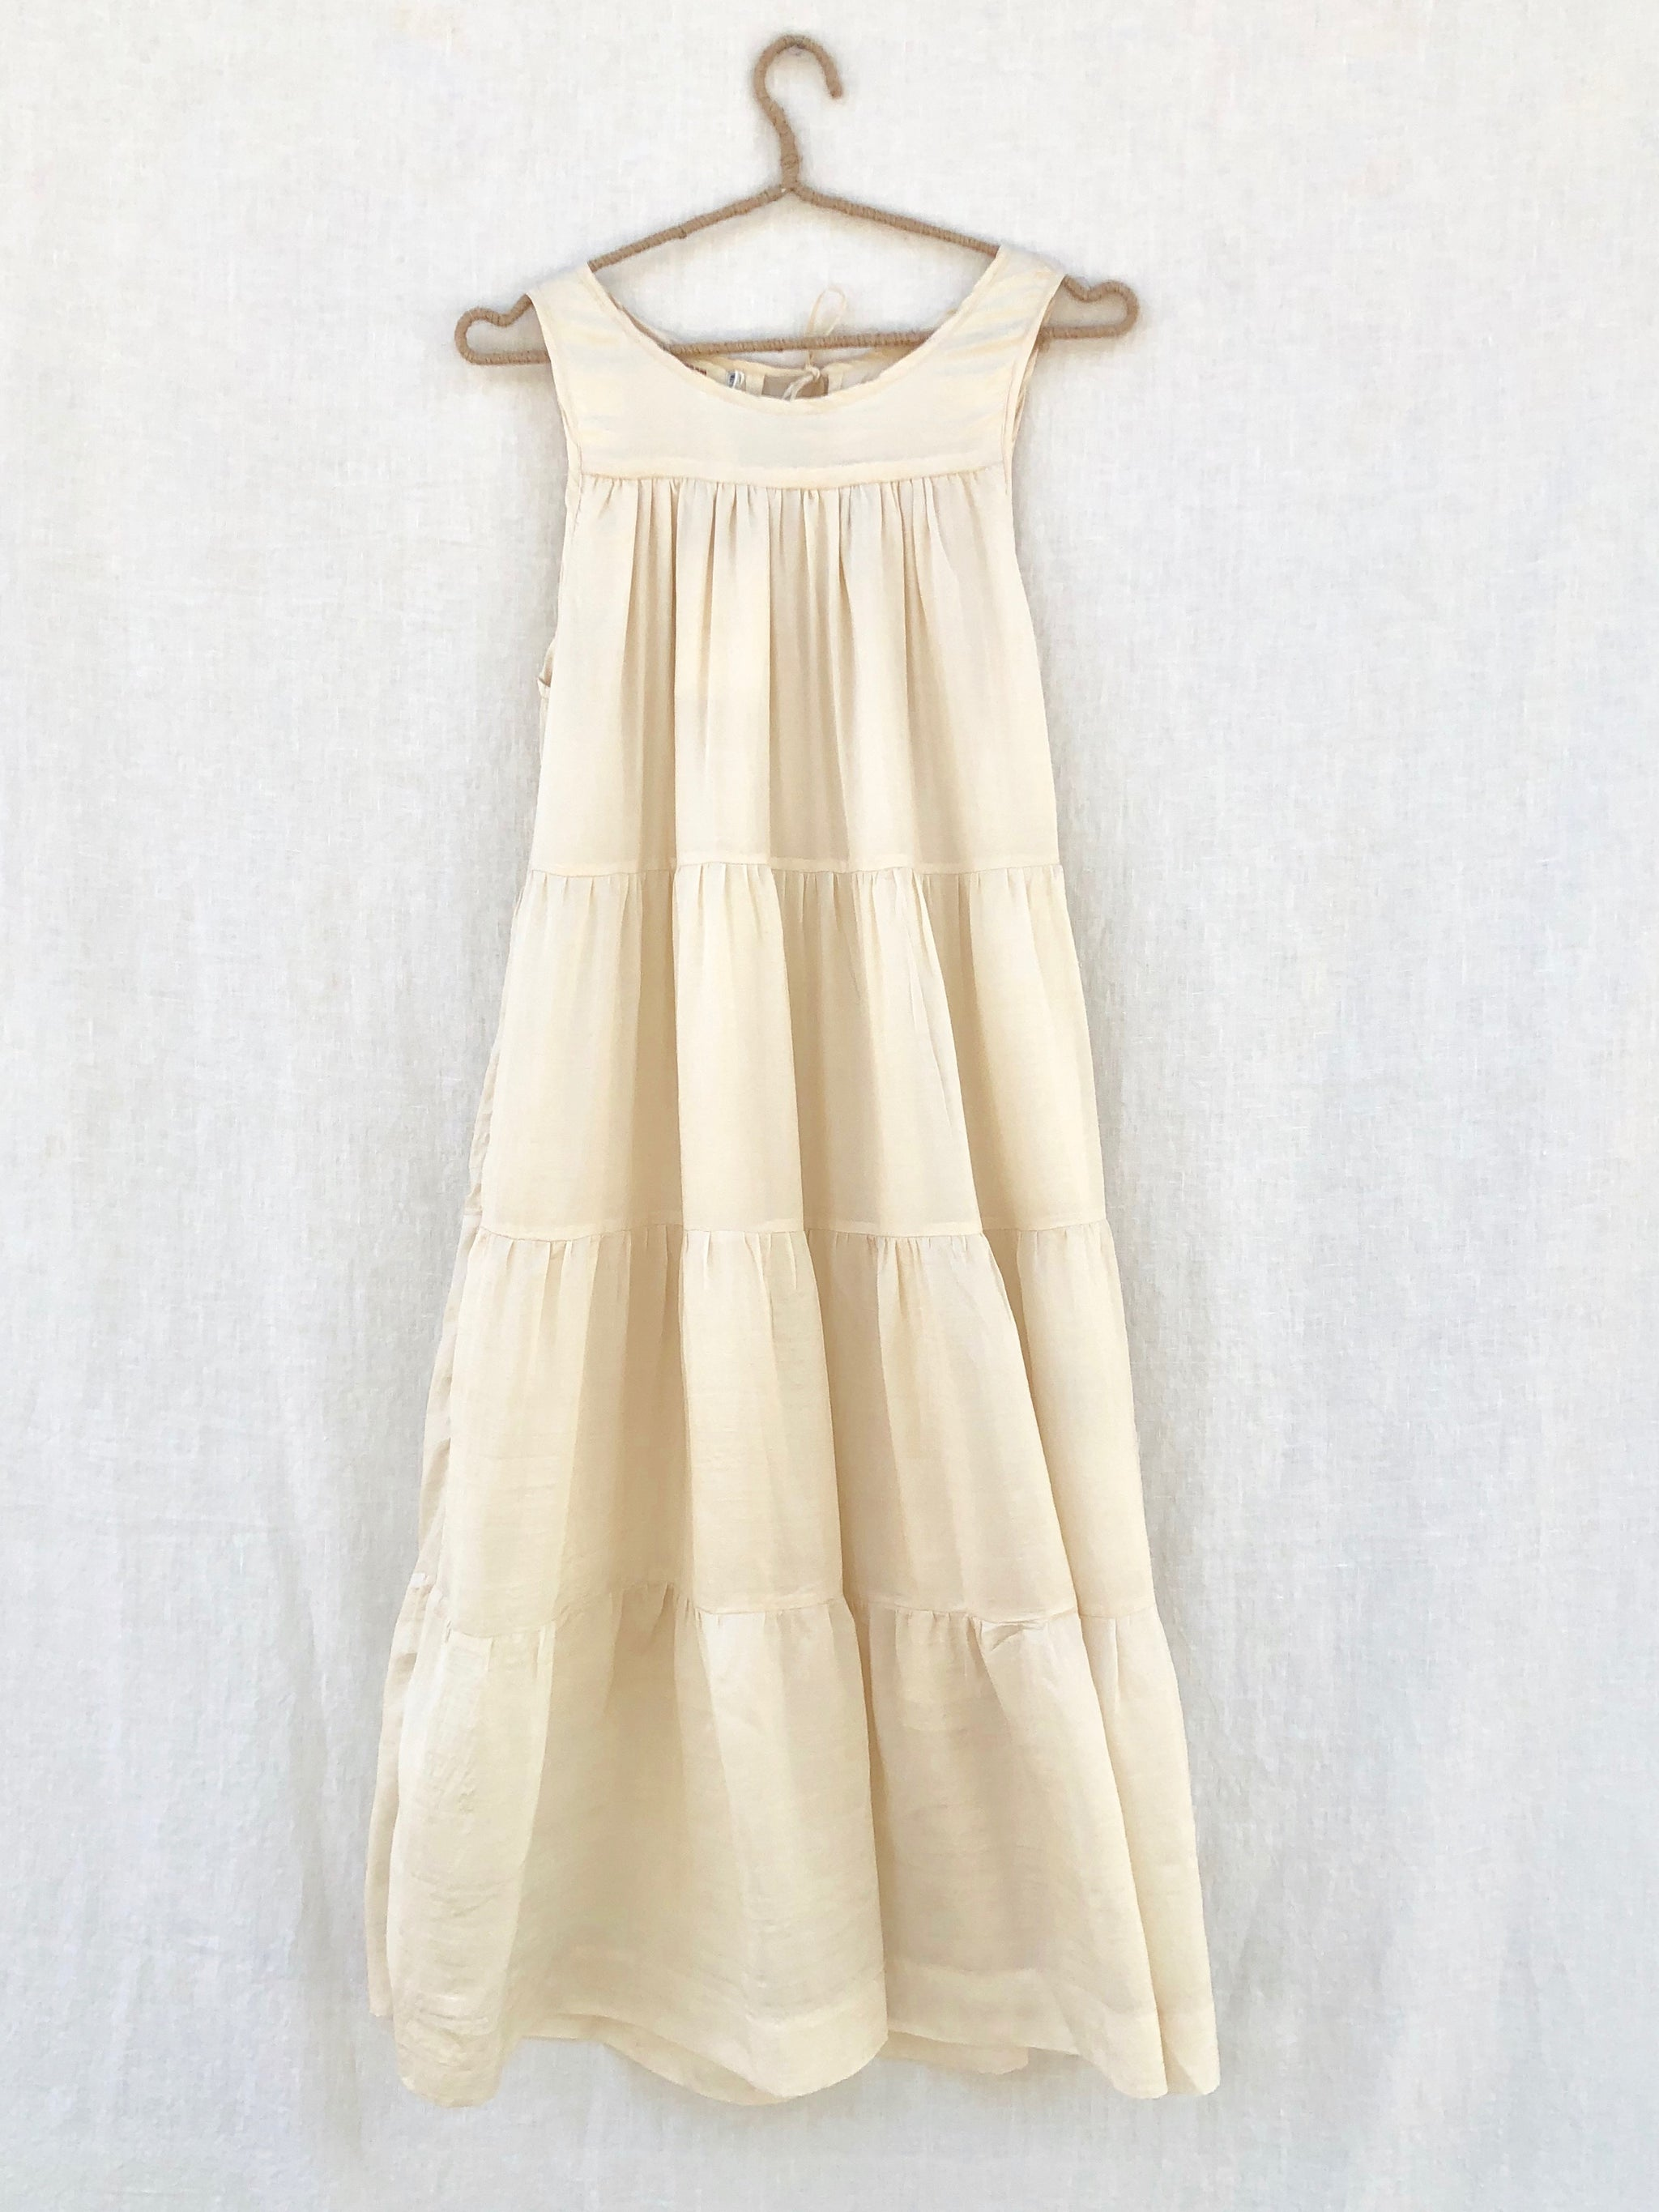 Jill Tiered Silk Sleeveless Dress - Beige